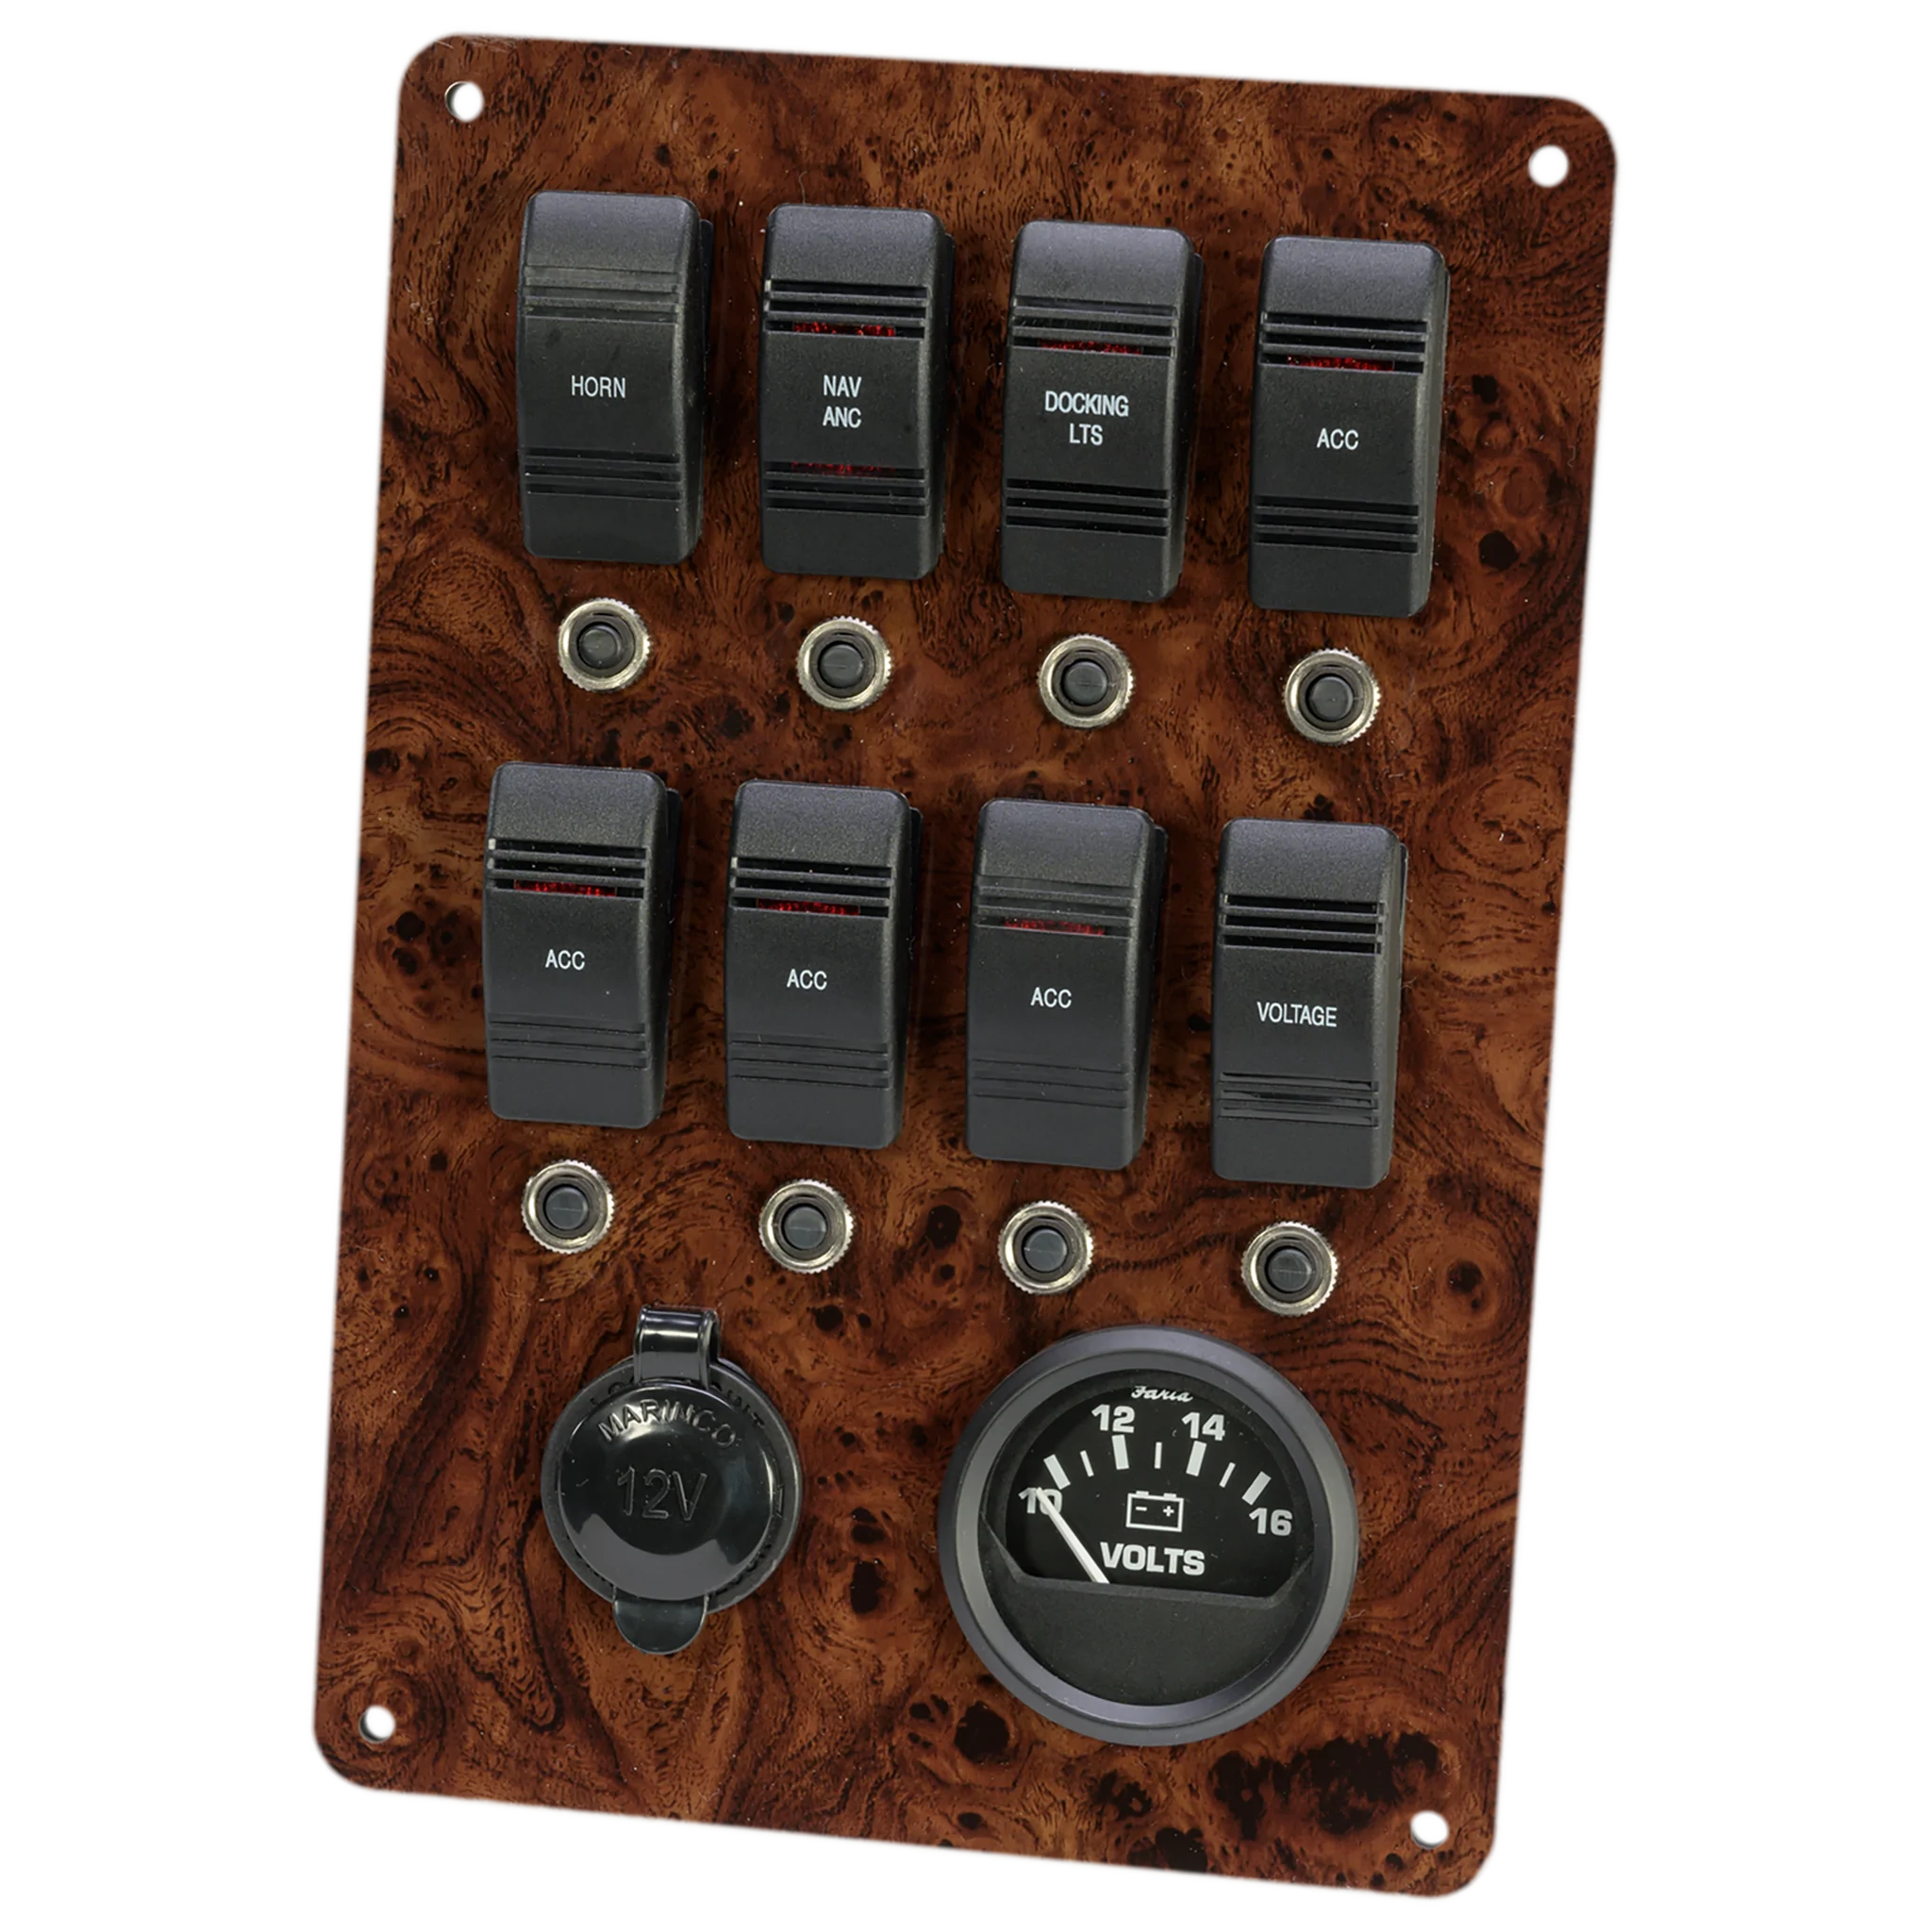 fully wired fused and loaded switch panel with 12 volt outlet and battery meter description plugs directly into our pontoon boat wiring harness  [ 2048 x 2048 Pixel ]